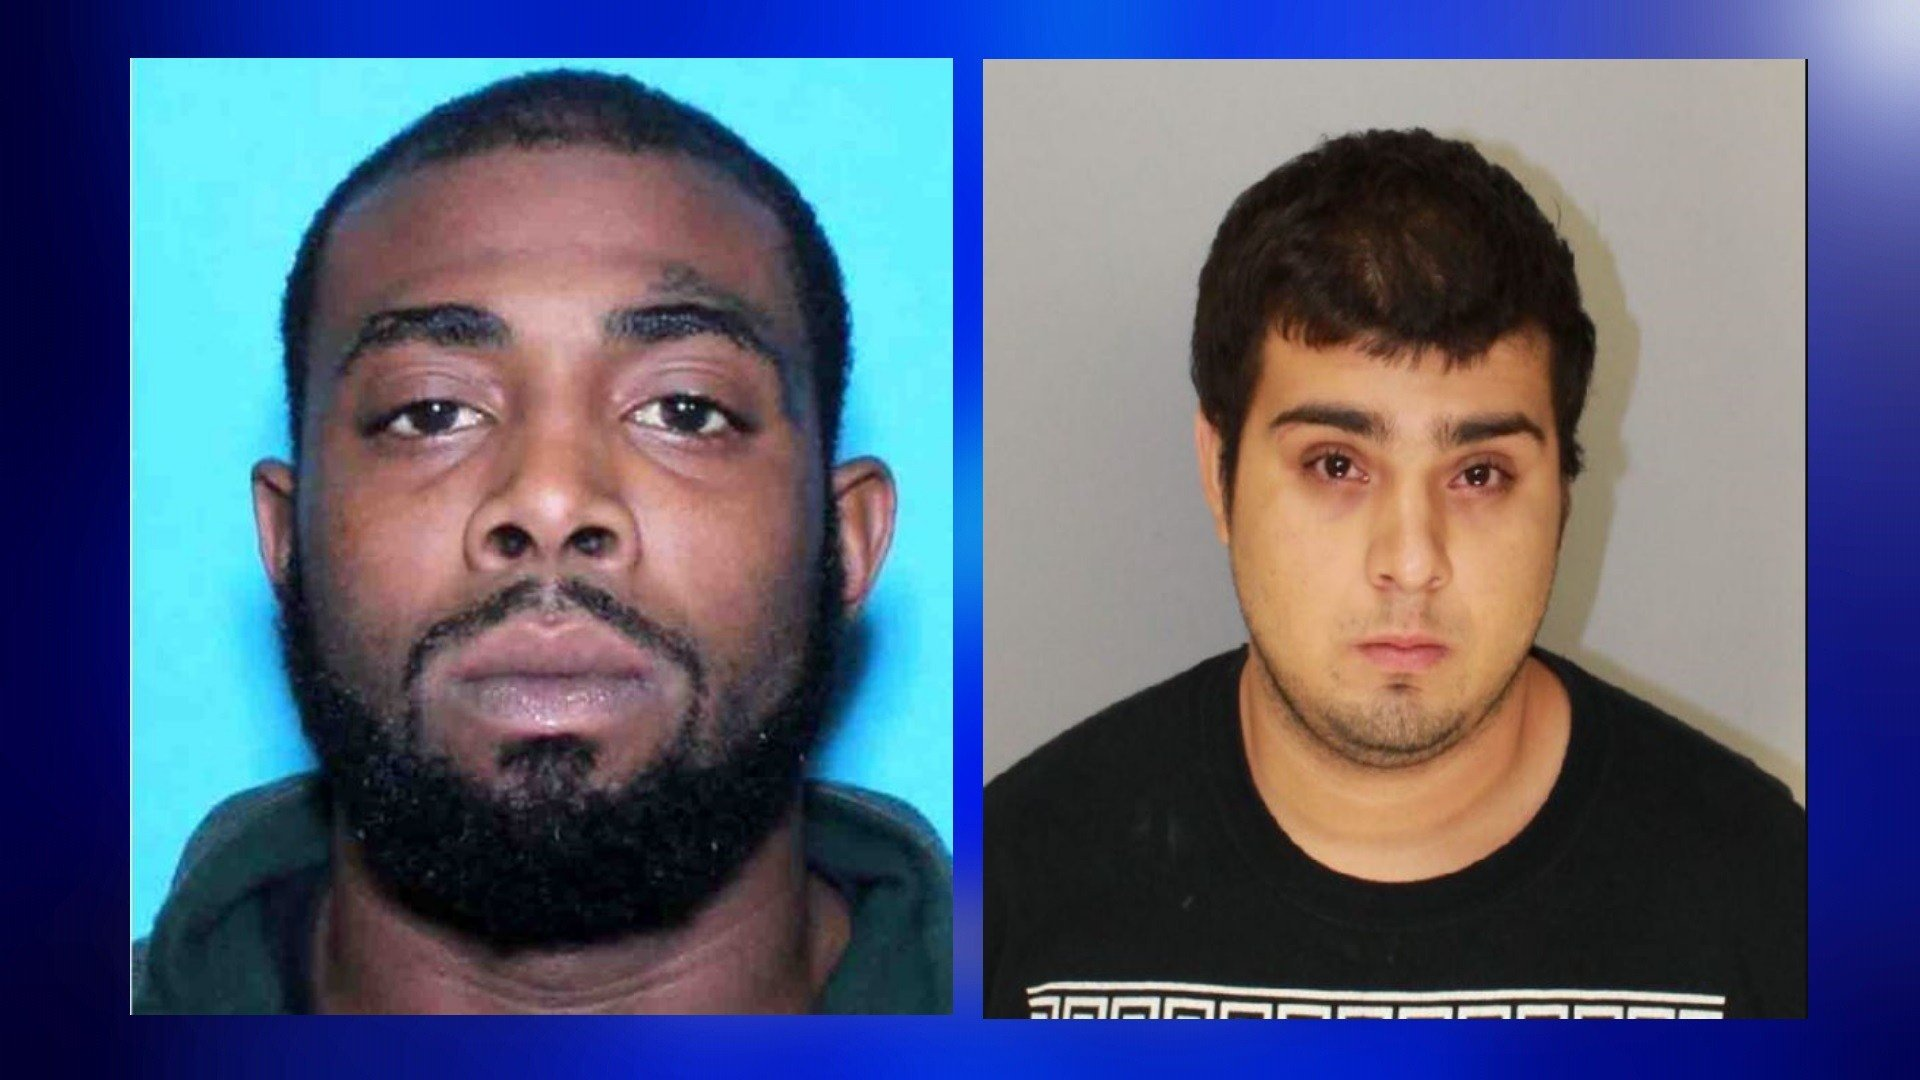 Left: Jeremiah Jenkins. Right: Filamir Gomez. Both charged with capital murder.